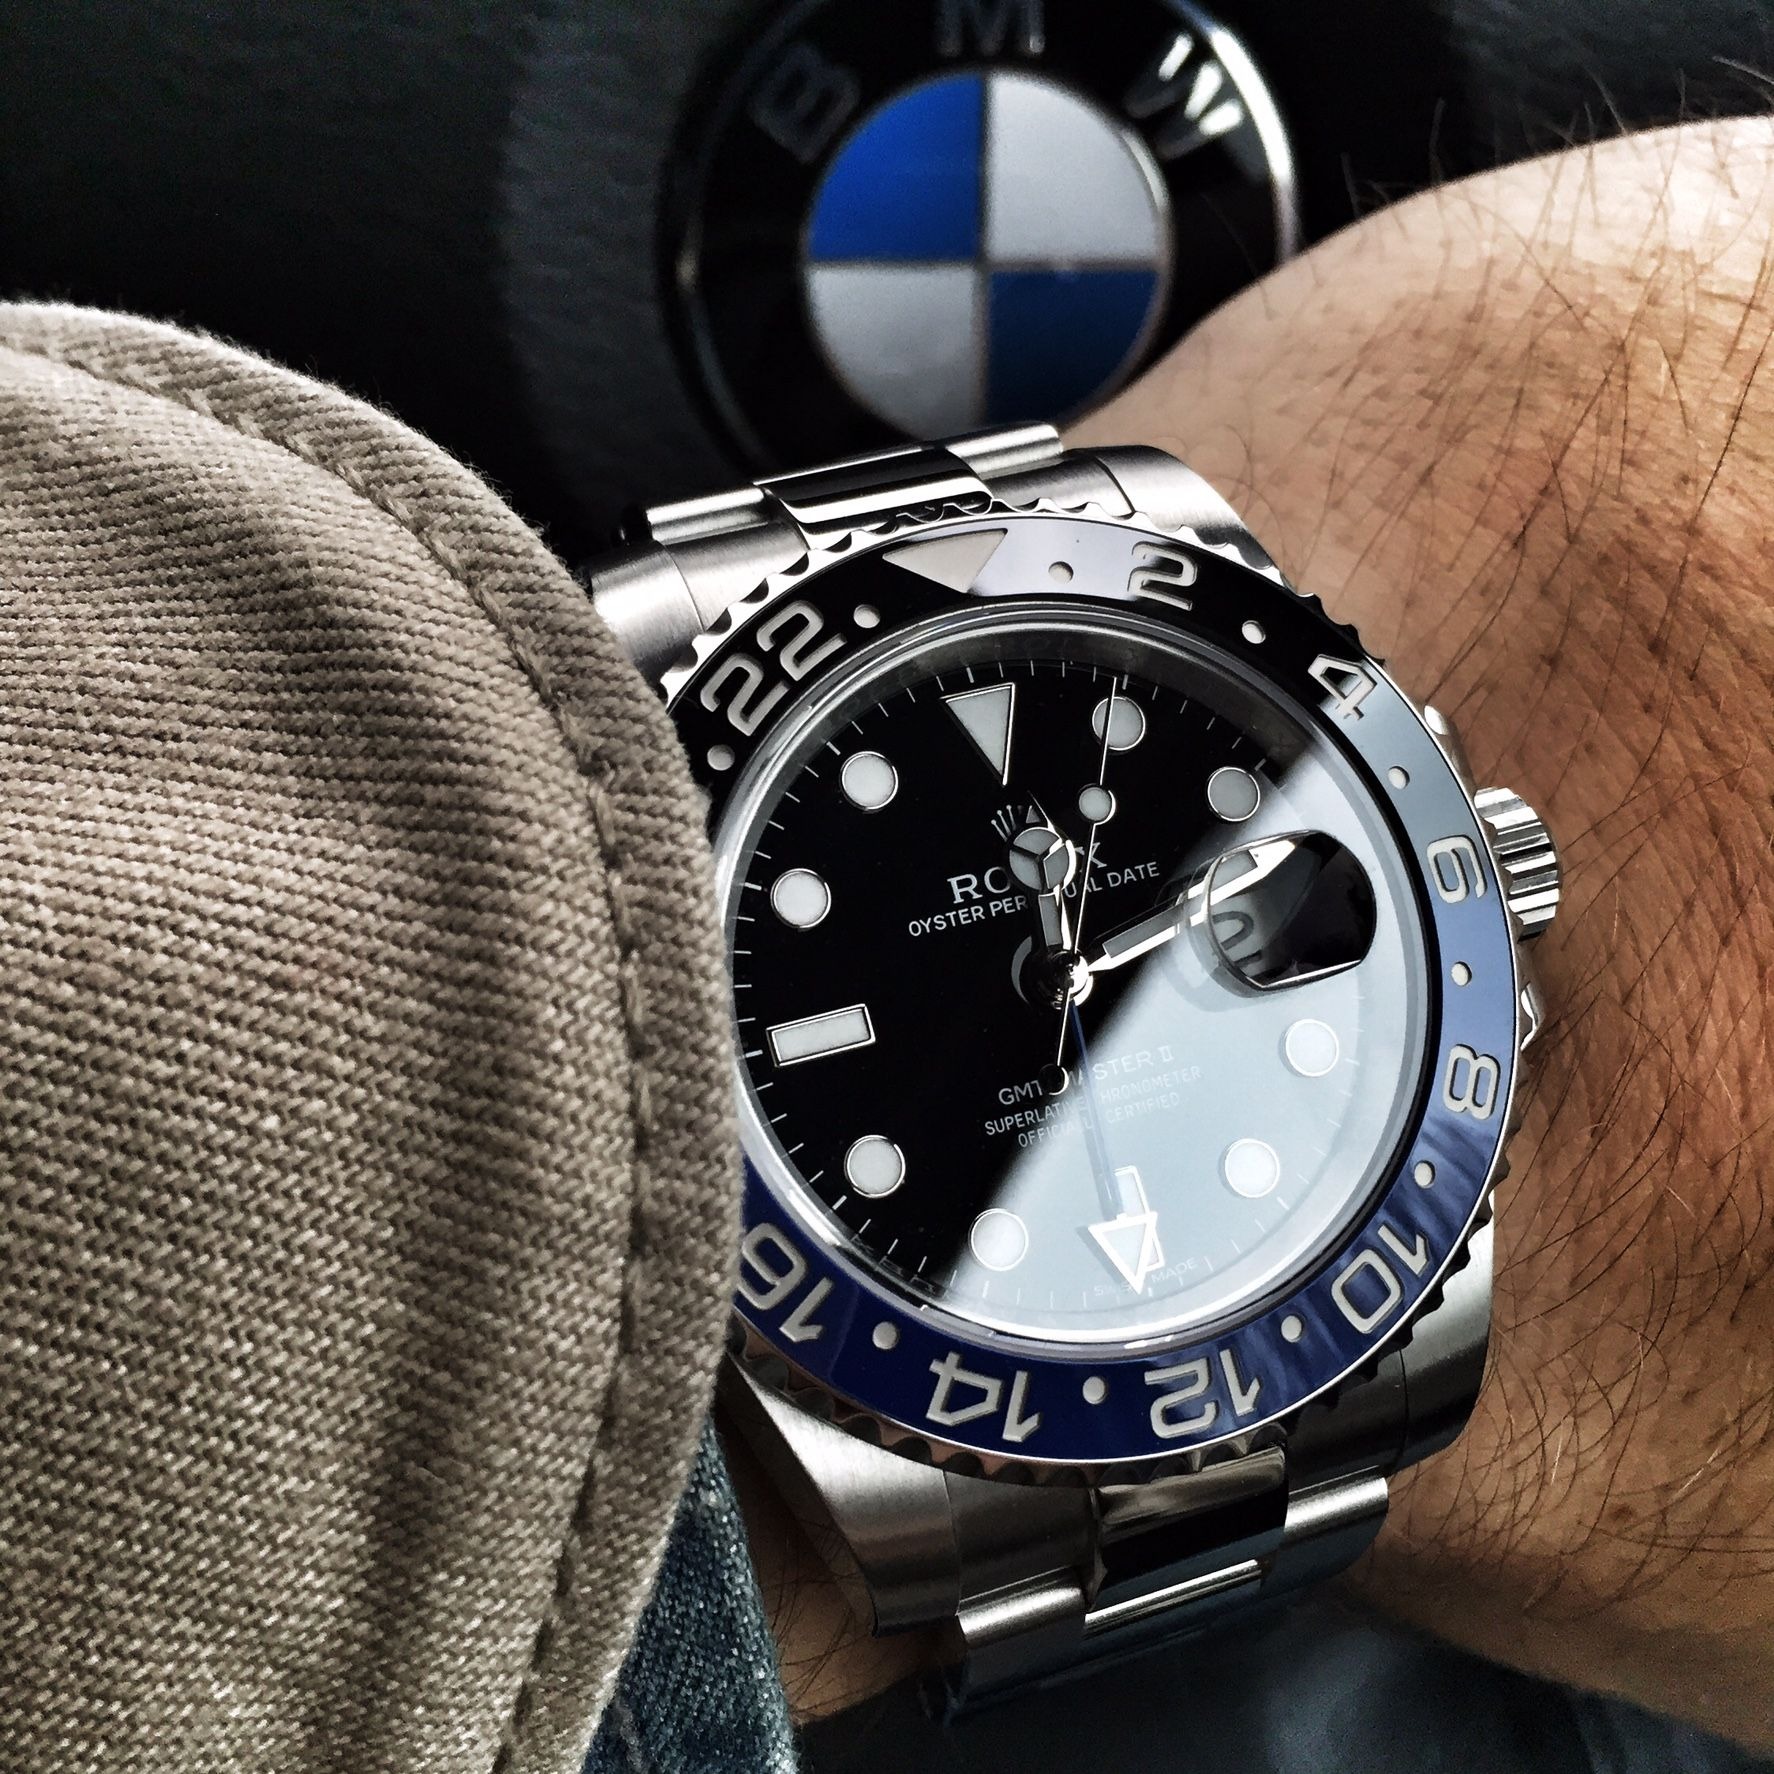 Rolex Gmt Master Ii 116710 Blnr Purchased From Uk Jewellers In October 2014 With With 160 Documentation Sign Luxury Watches For Men Rolex Watches Rolex Men